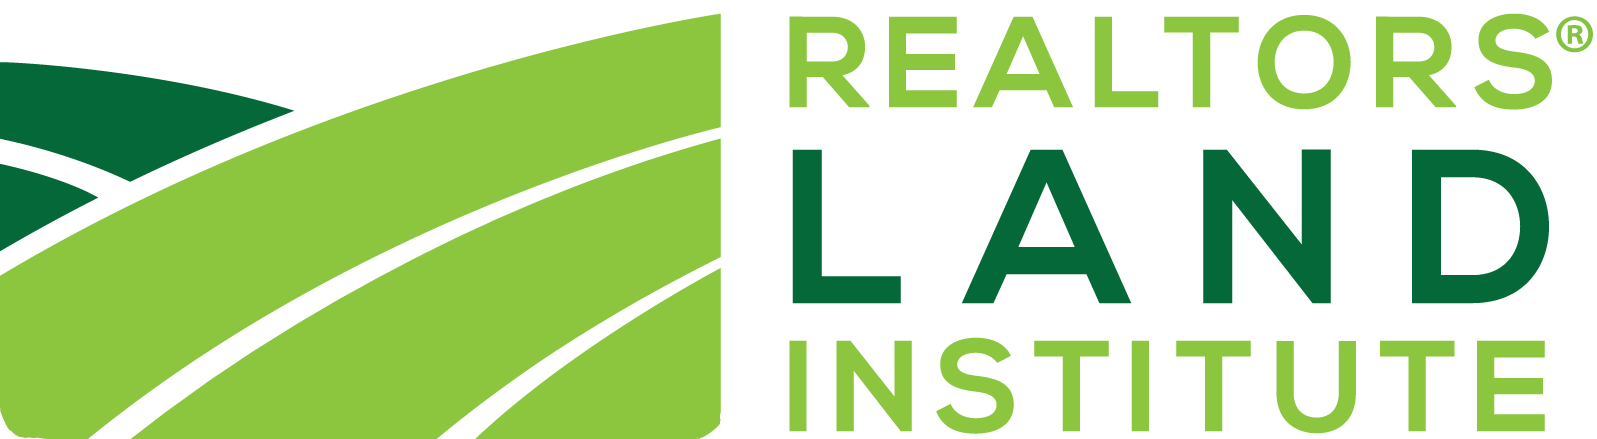 Illinois REALTORS® Land Institute  (RLI)